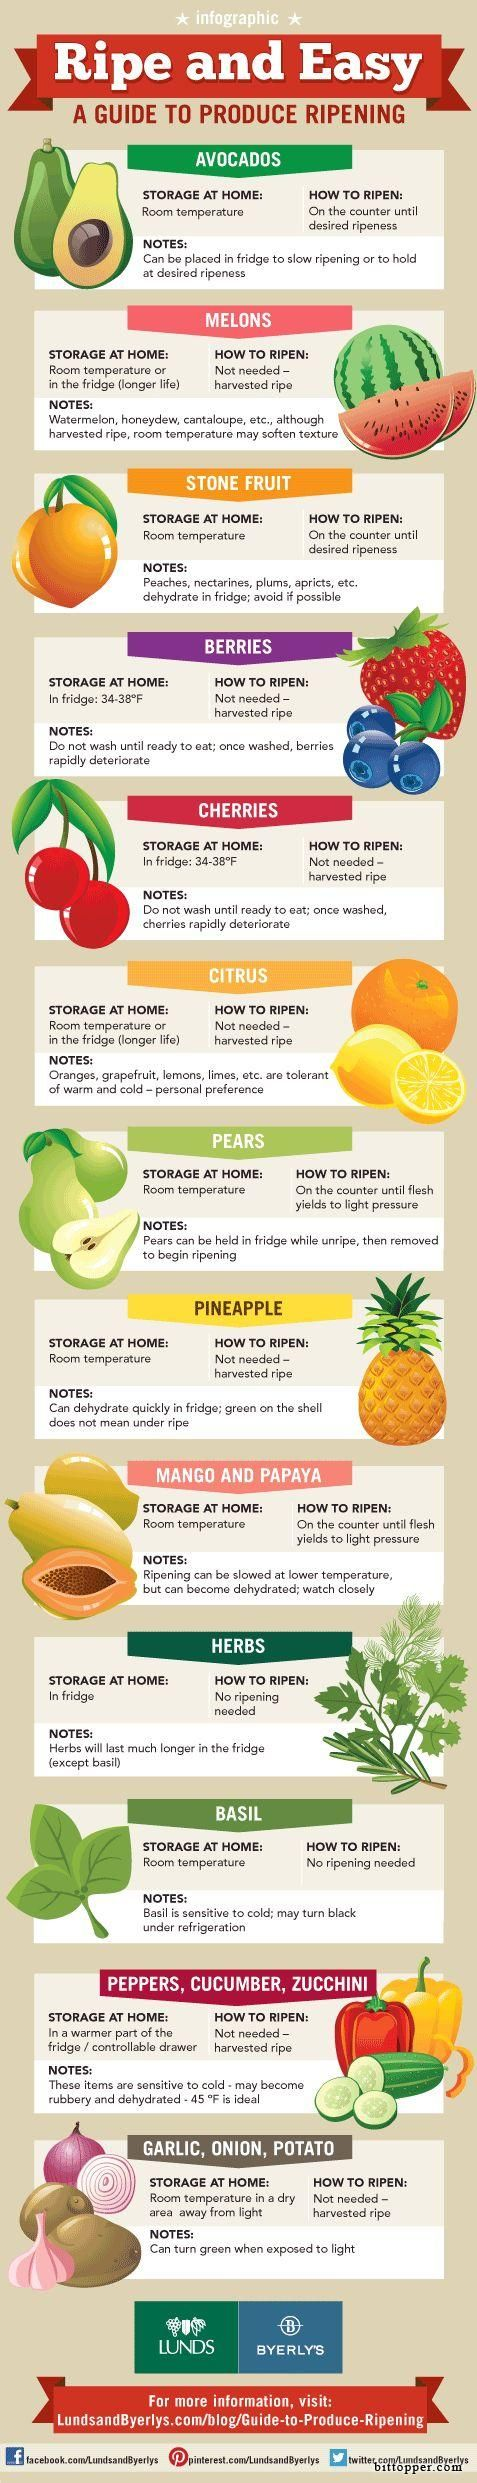 #Howto store and speed up the ripening of fruit. #infographic #tips #cooking via… #MaVi|#Logic